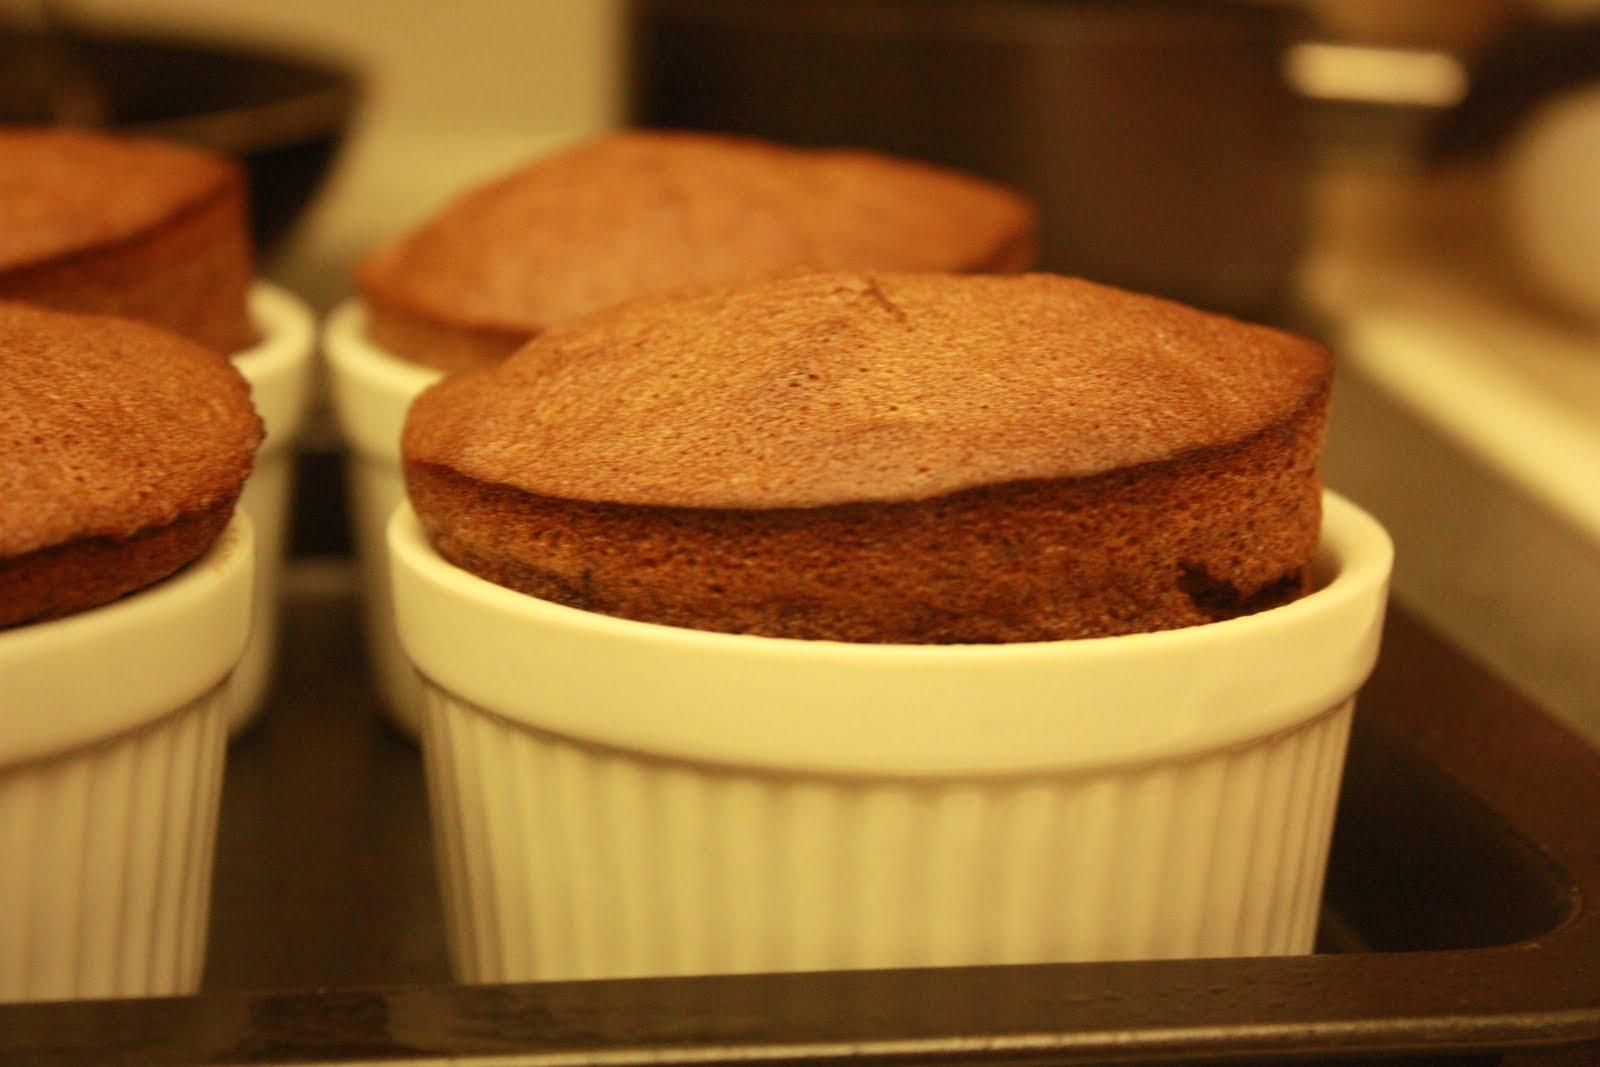 Deeelish By Mish: 100 Calorie Chocolate Banana Souffle